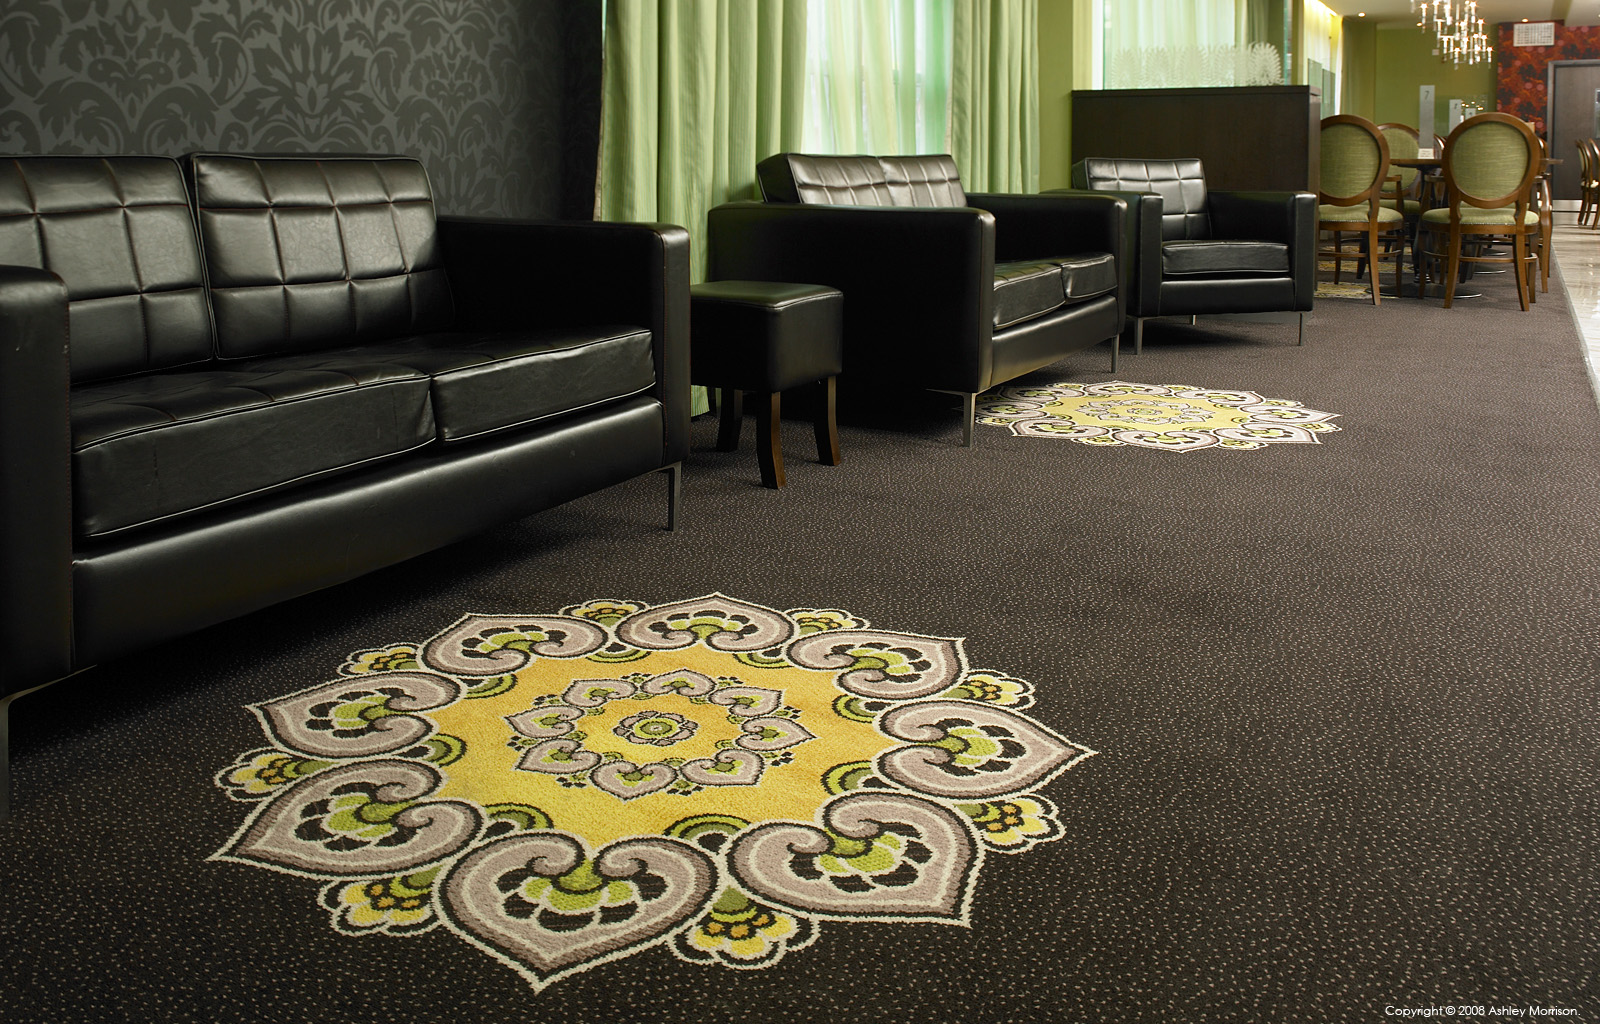 Hotel carpet by Ulster Carpet.